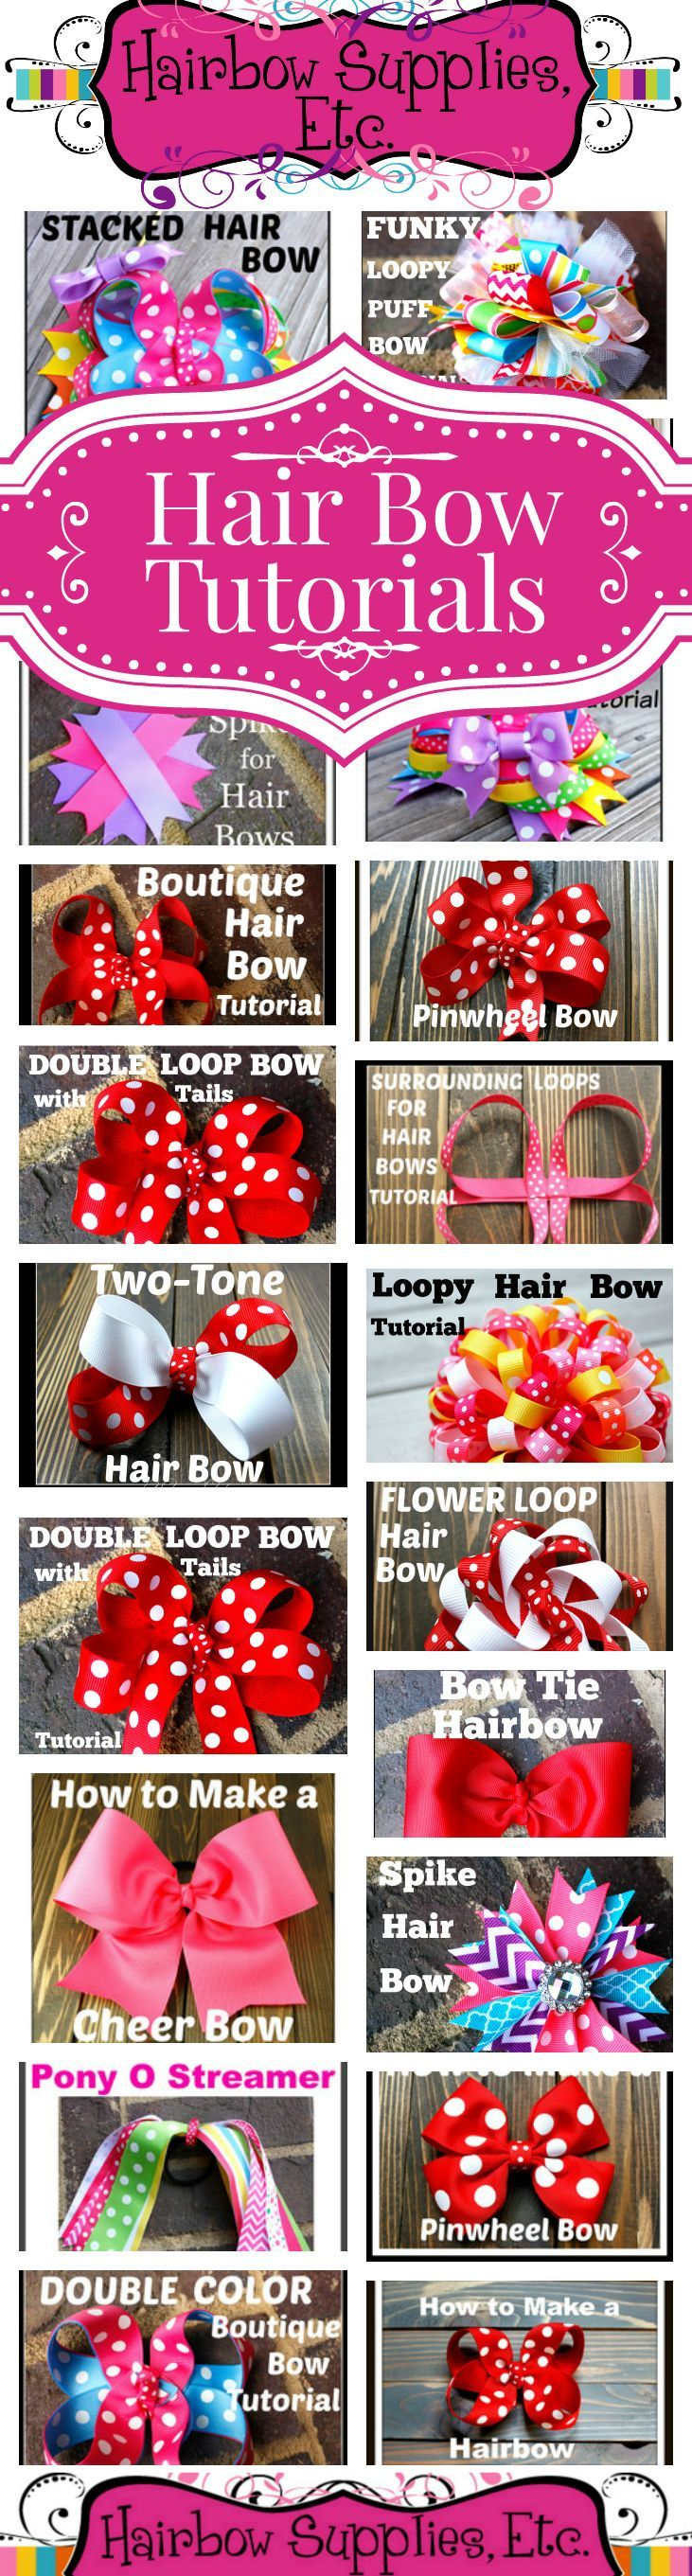 nike waffle racer 3 Over 50 FREE Hair Bow Tutorials  C Hair Bow Instructions made easy by Hairbow Supplies  Etc    Simple to follow DIY video instructions to make hair bows for your little girl   www hairbowsuppliesetc com